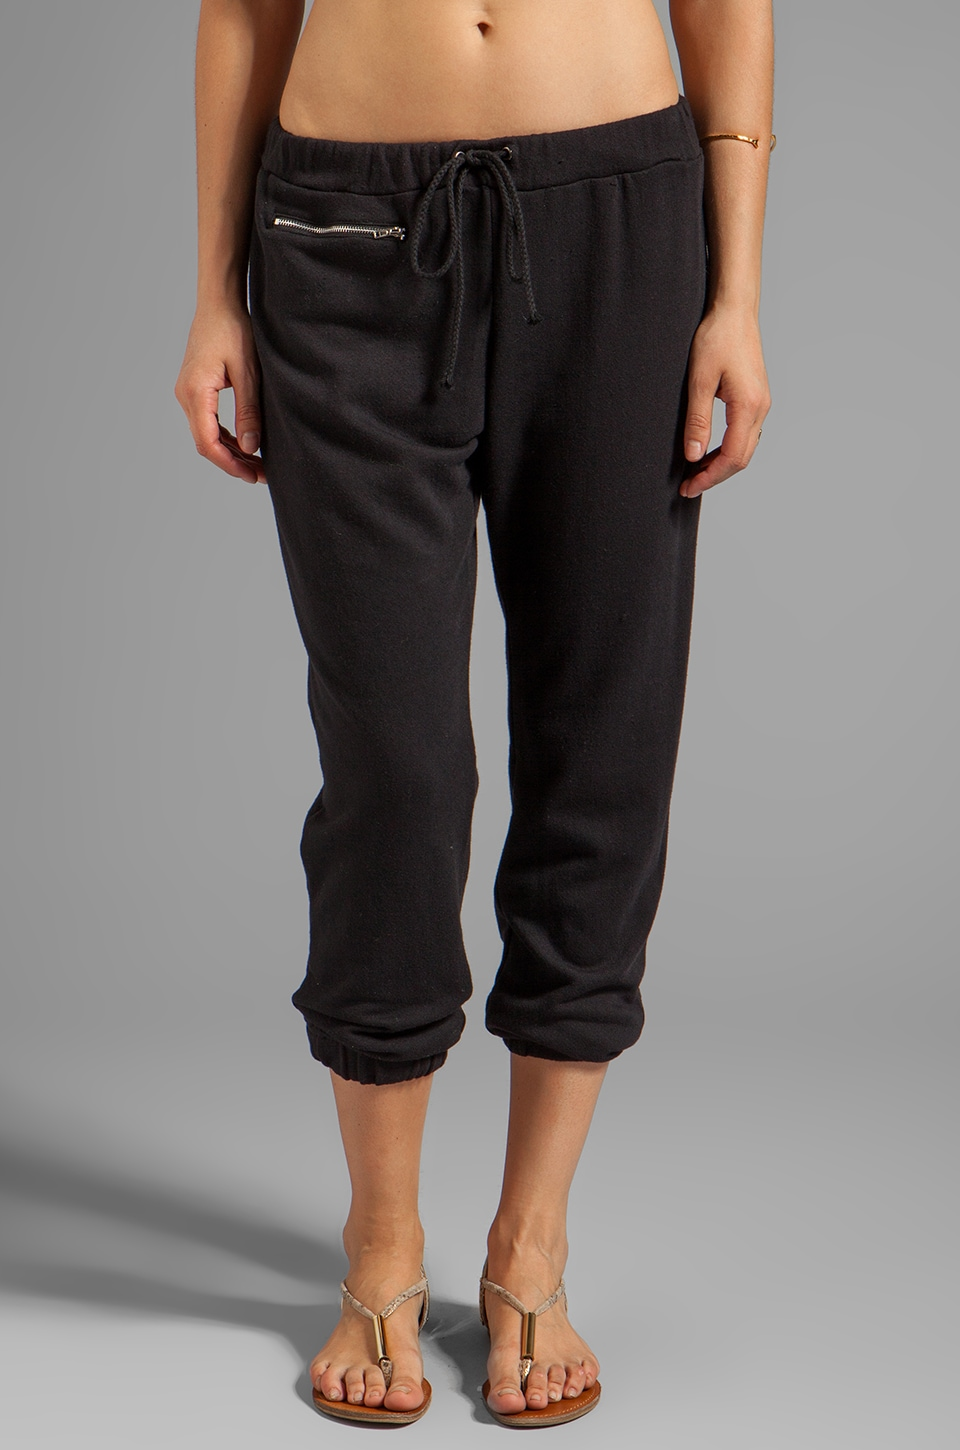 DAYDREAMER Zip Pocket Sweatpants in Black